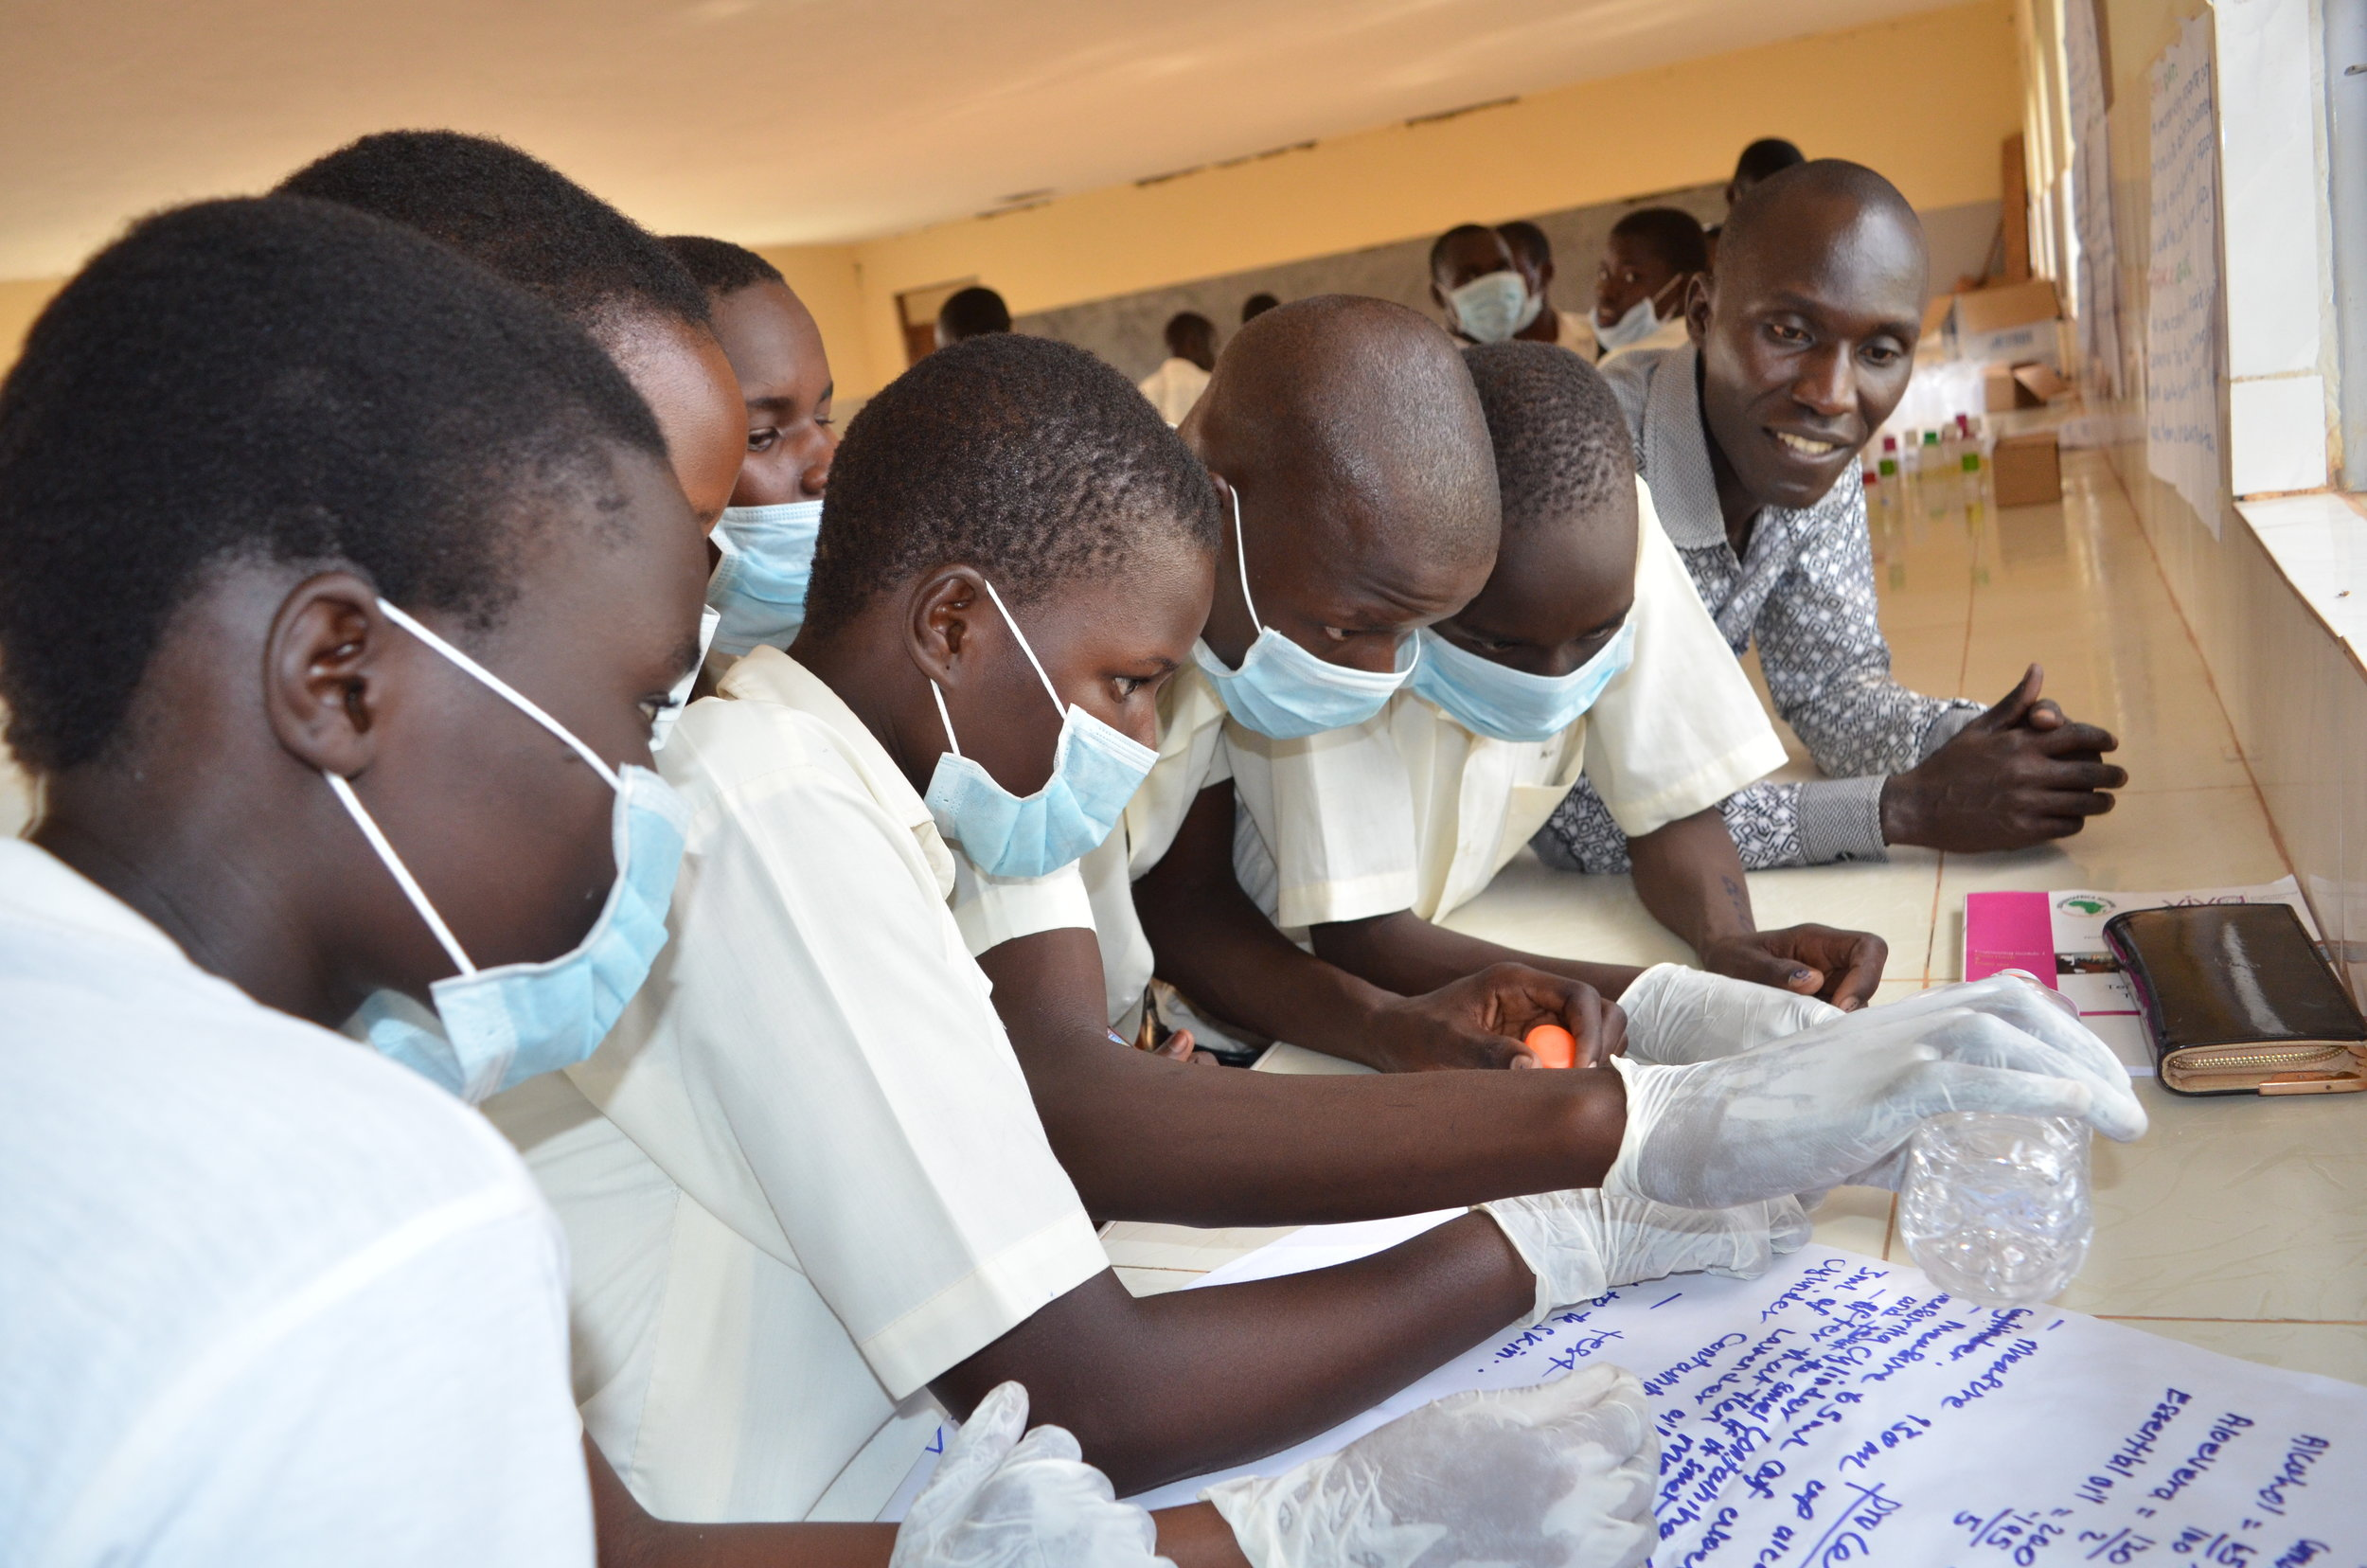 Copy of Students creating their first prototype of a locally made hand sanitizer.JPG